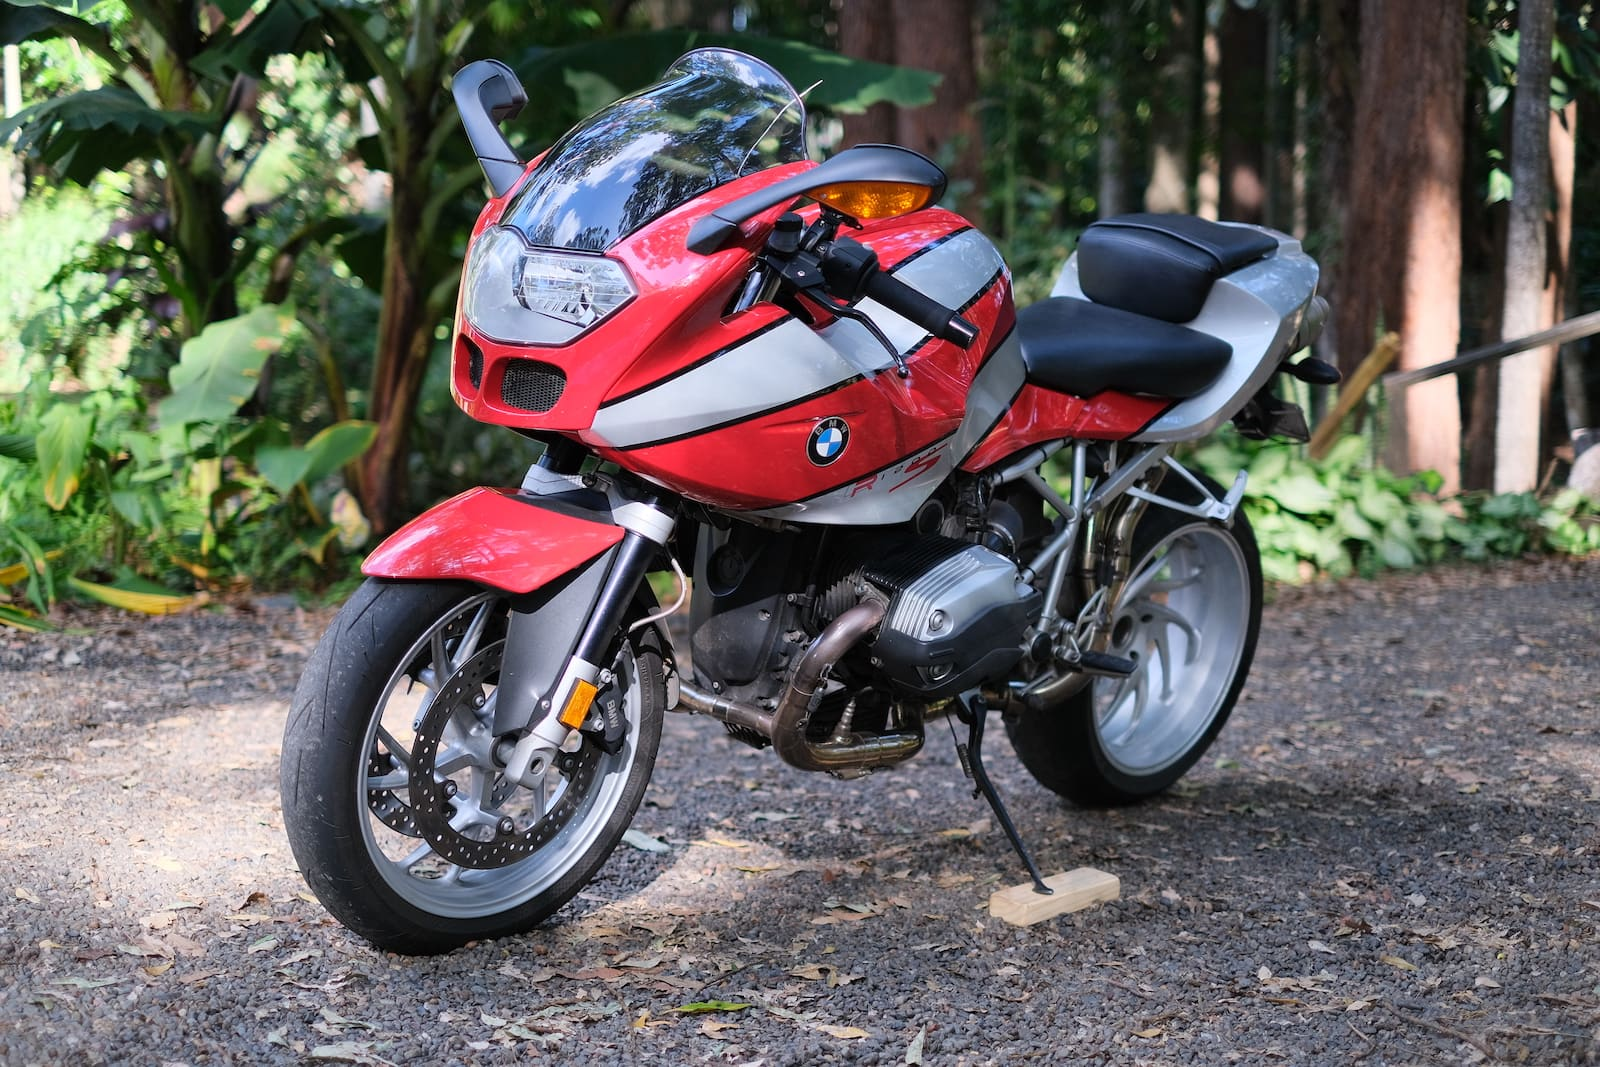 BMW R1200S in red and silver - side view up close